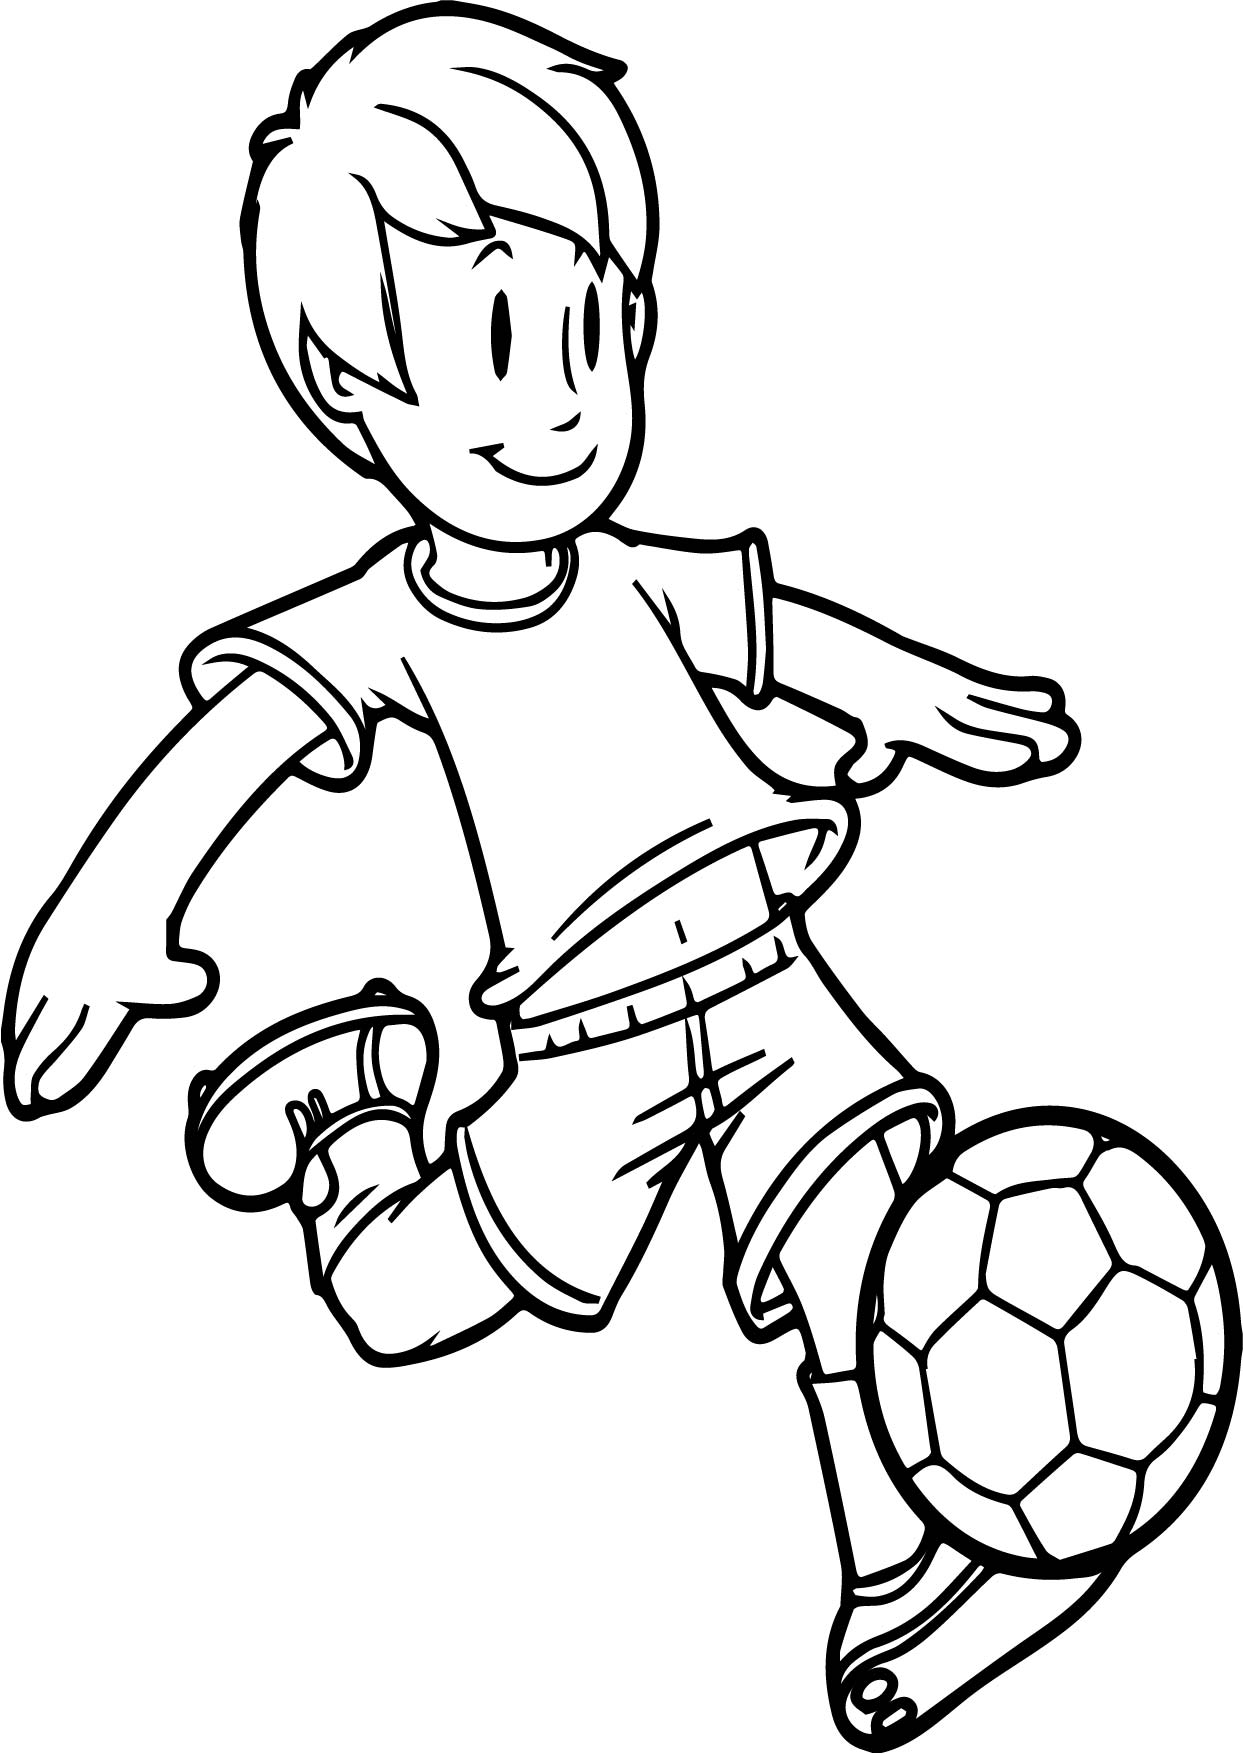 1243x1754 Cartoon Boy Playing Soccer Kid Ball On Easy Coloring Page